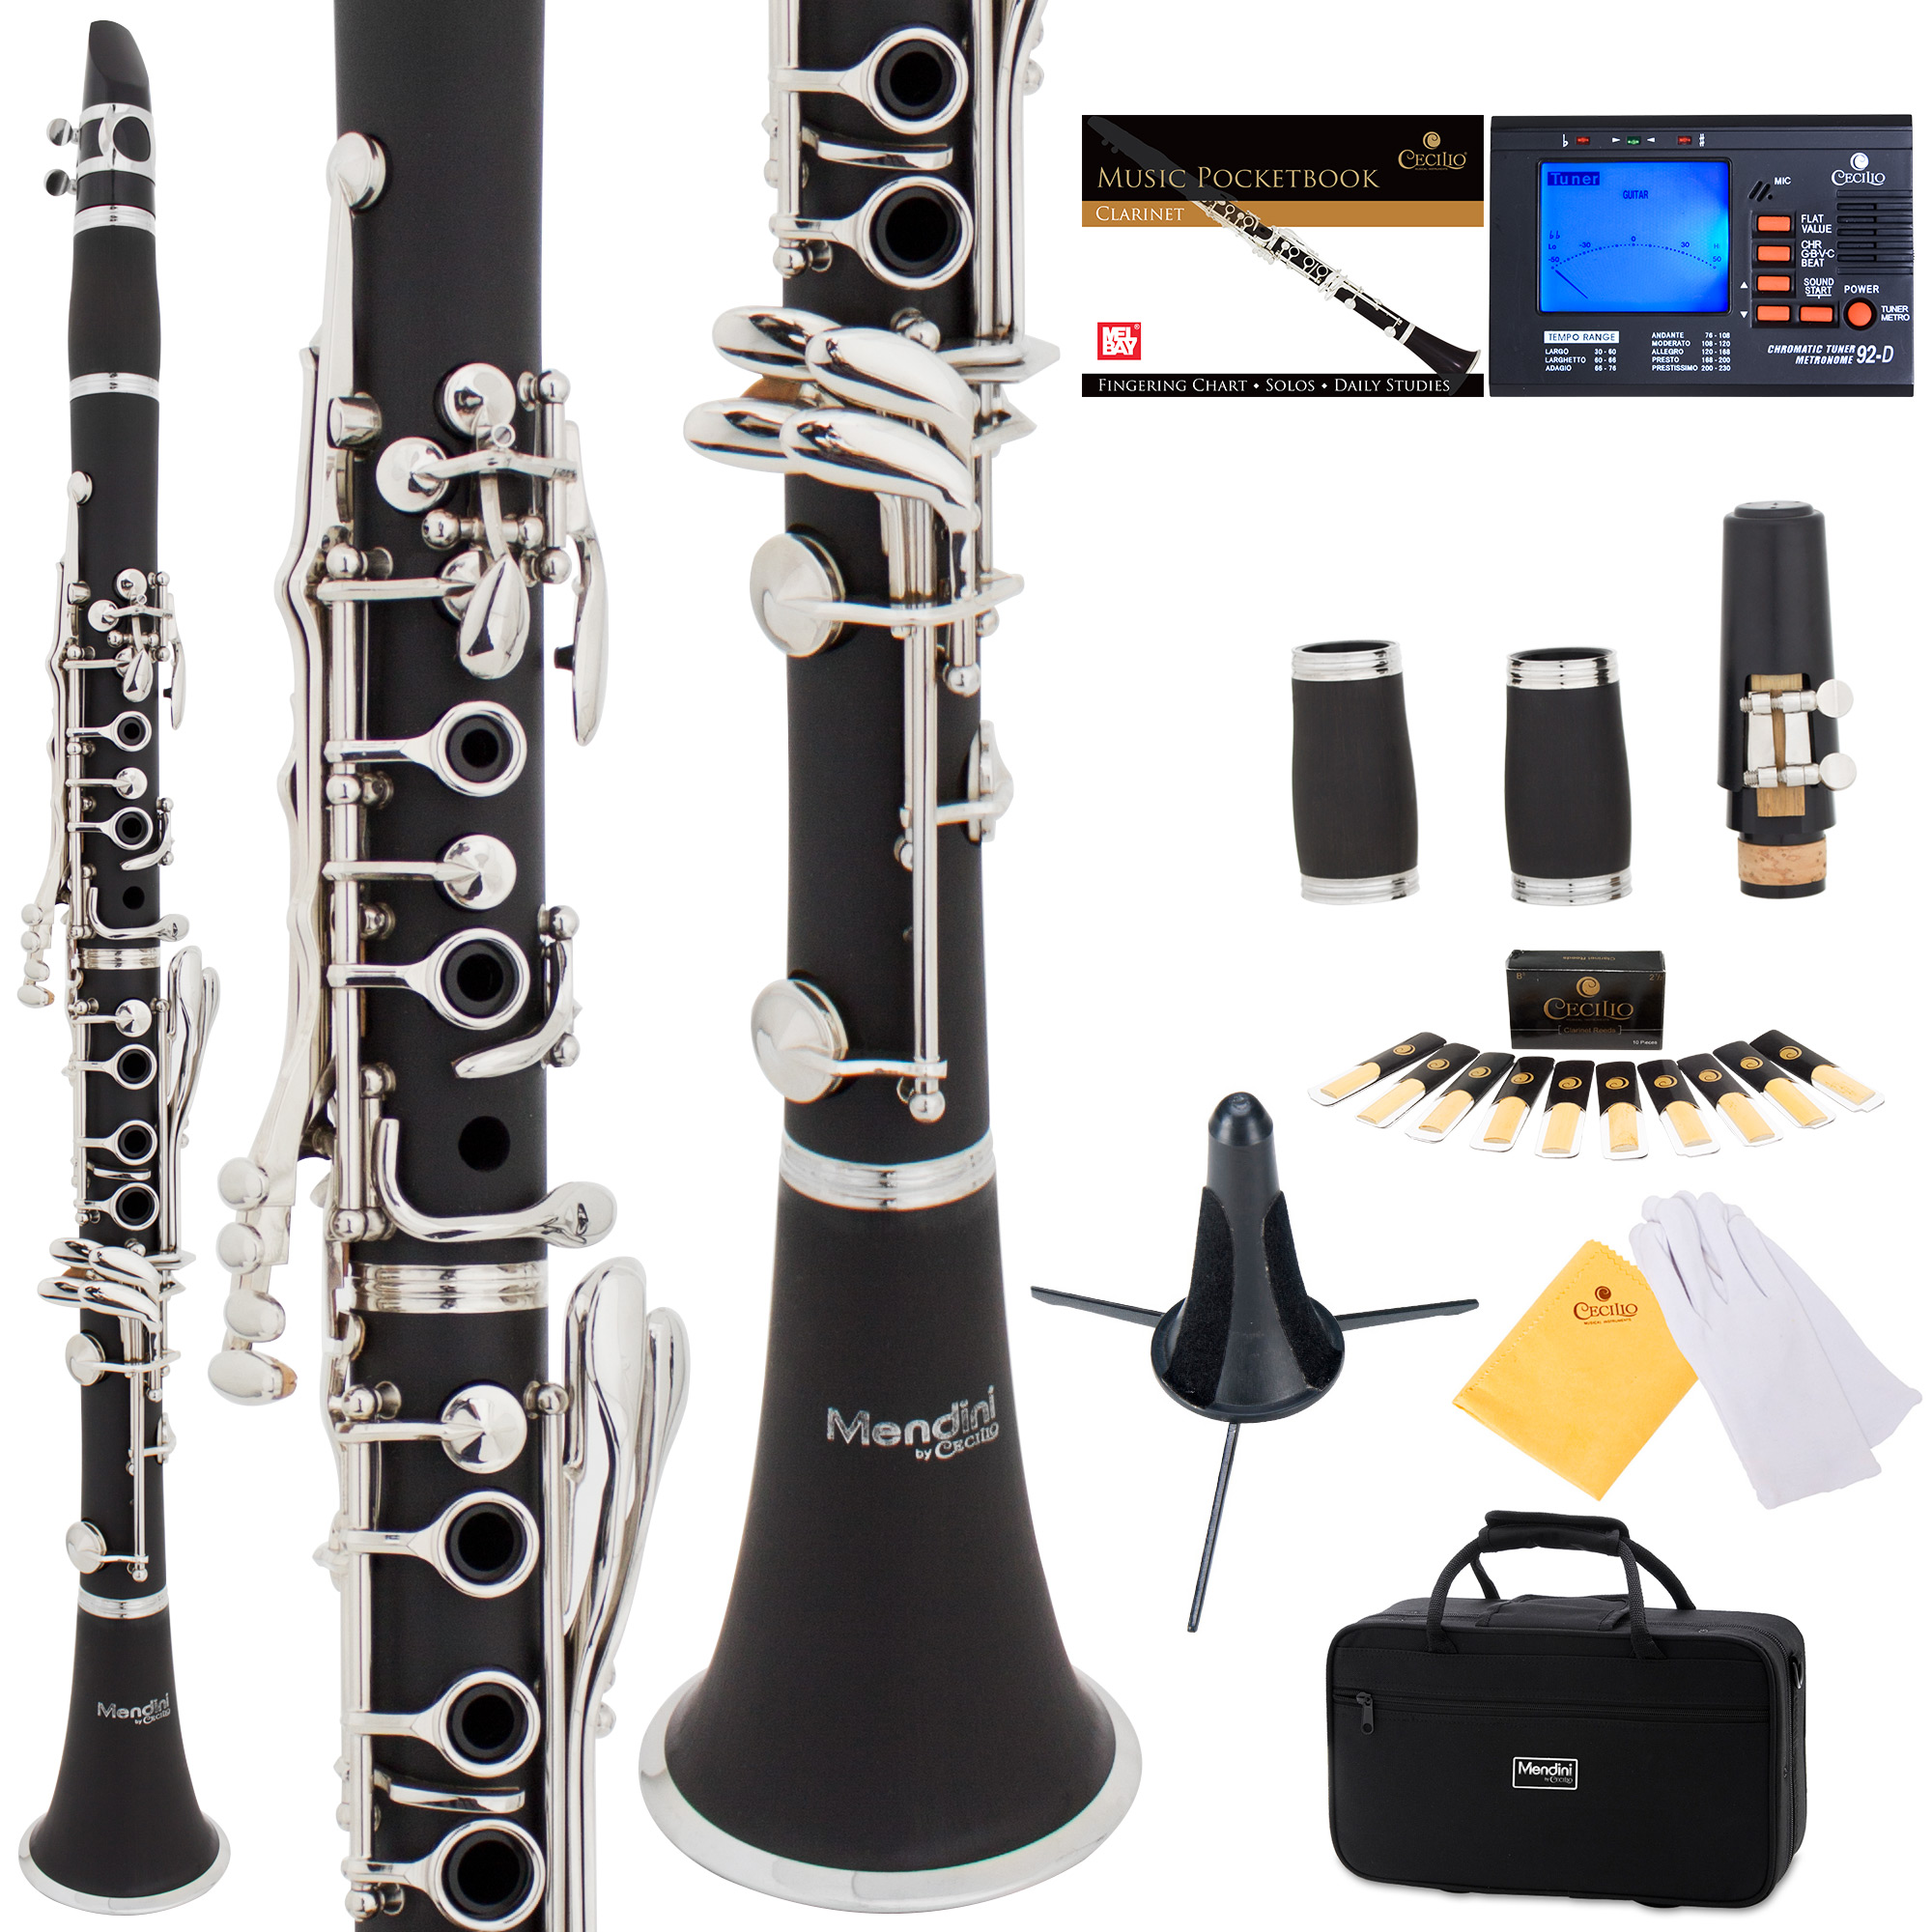 Mendini by Cecilio MCT-JE2 Black Ebonite Bb Clarinet w/ 2 Barrels, 1 Year Warranty, Stand, Tuner, 10 Reeds, Pocketbook, Mouthpiece, Case, B Flat